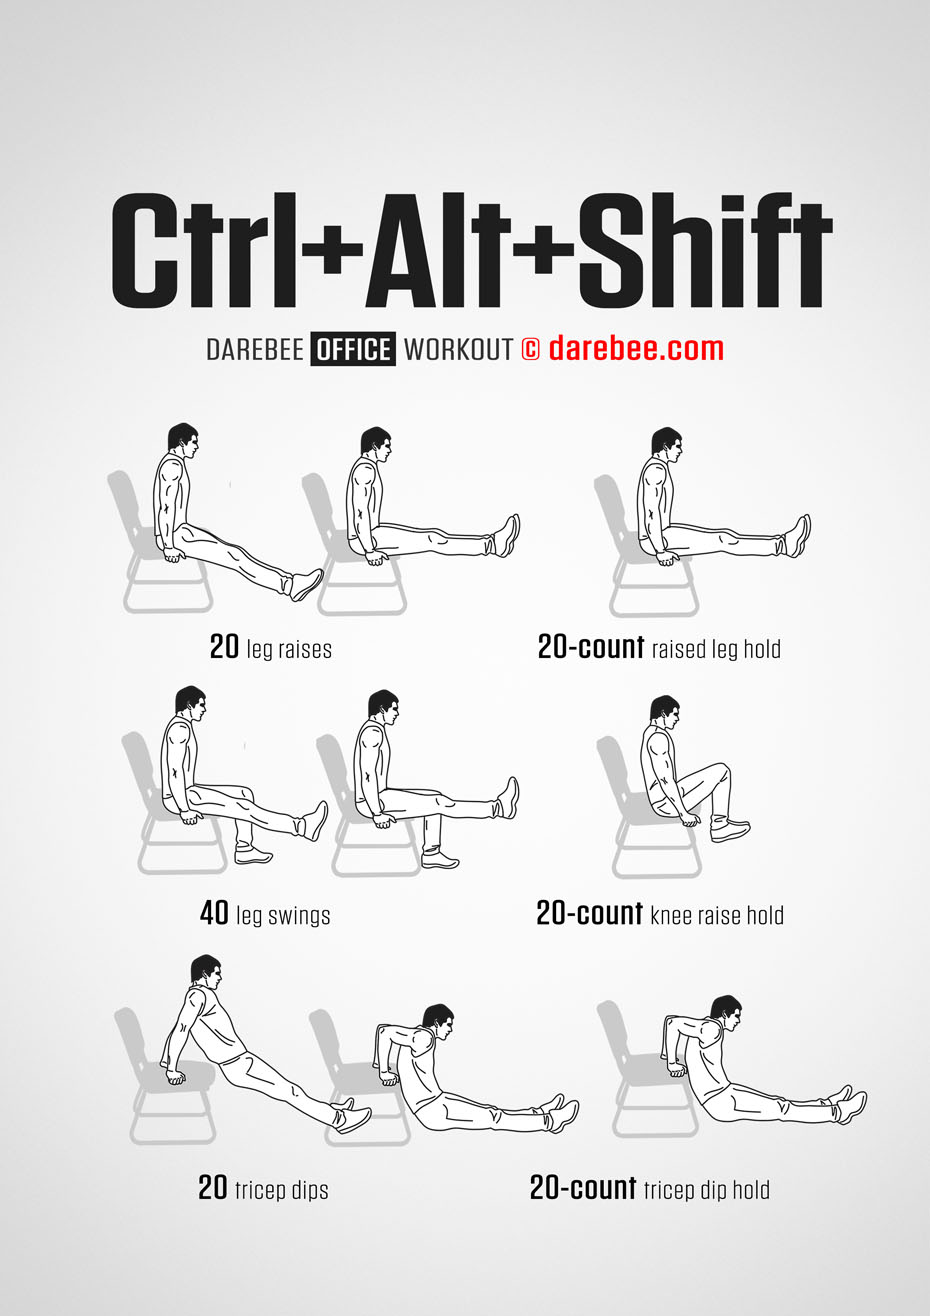 exercise desk chair table and all in one ctrl + alt shift workout